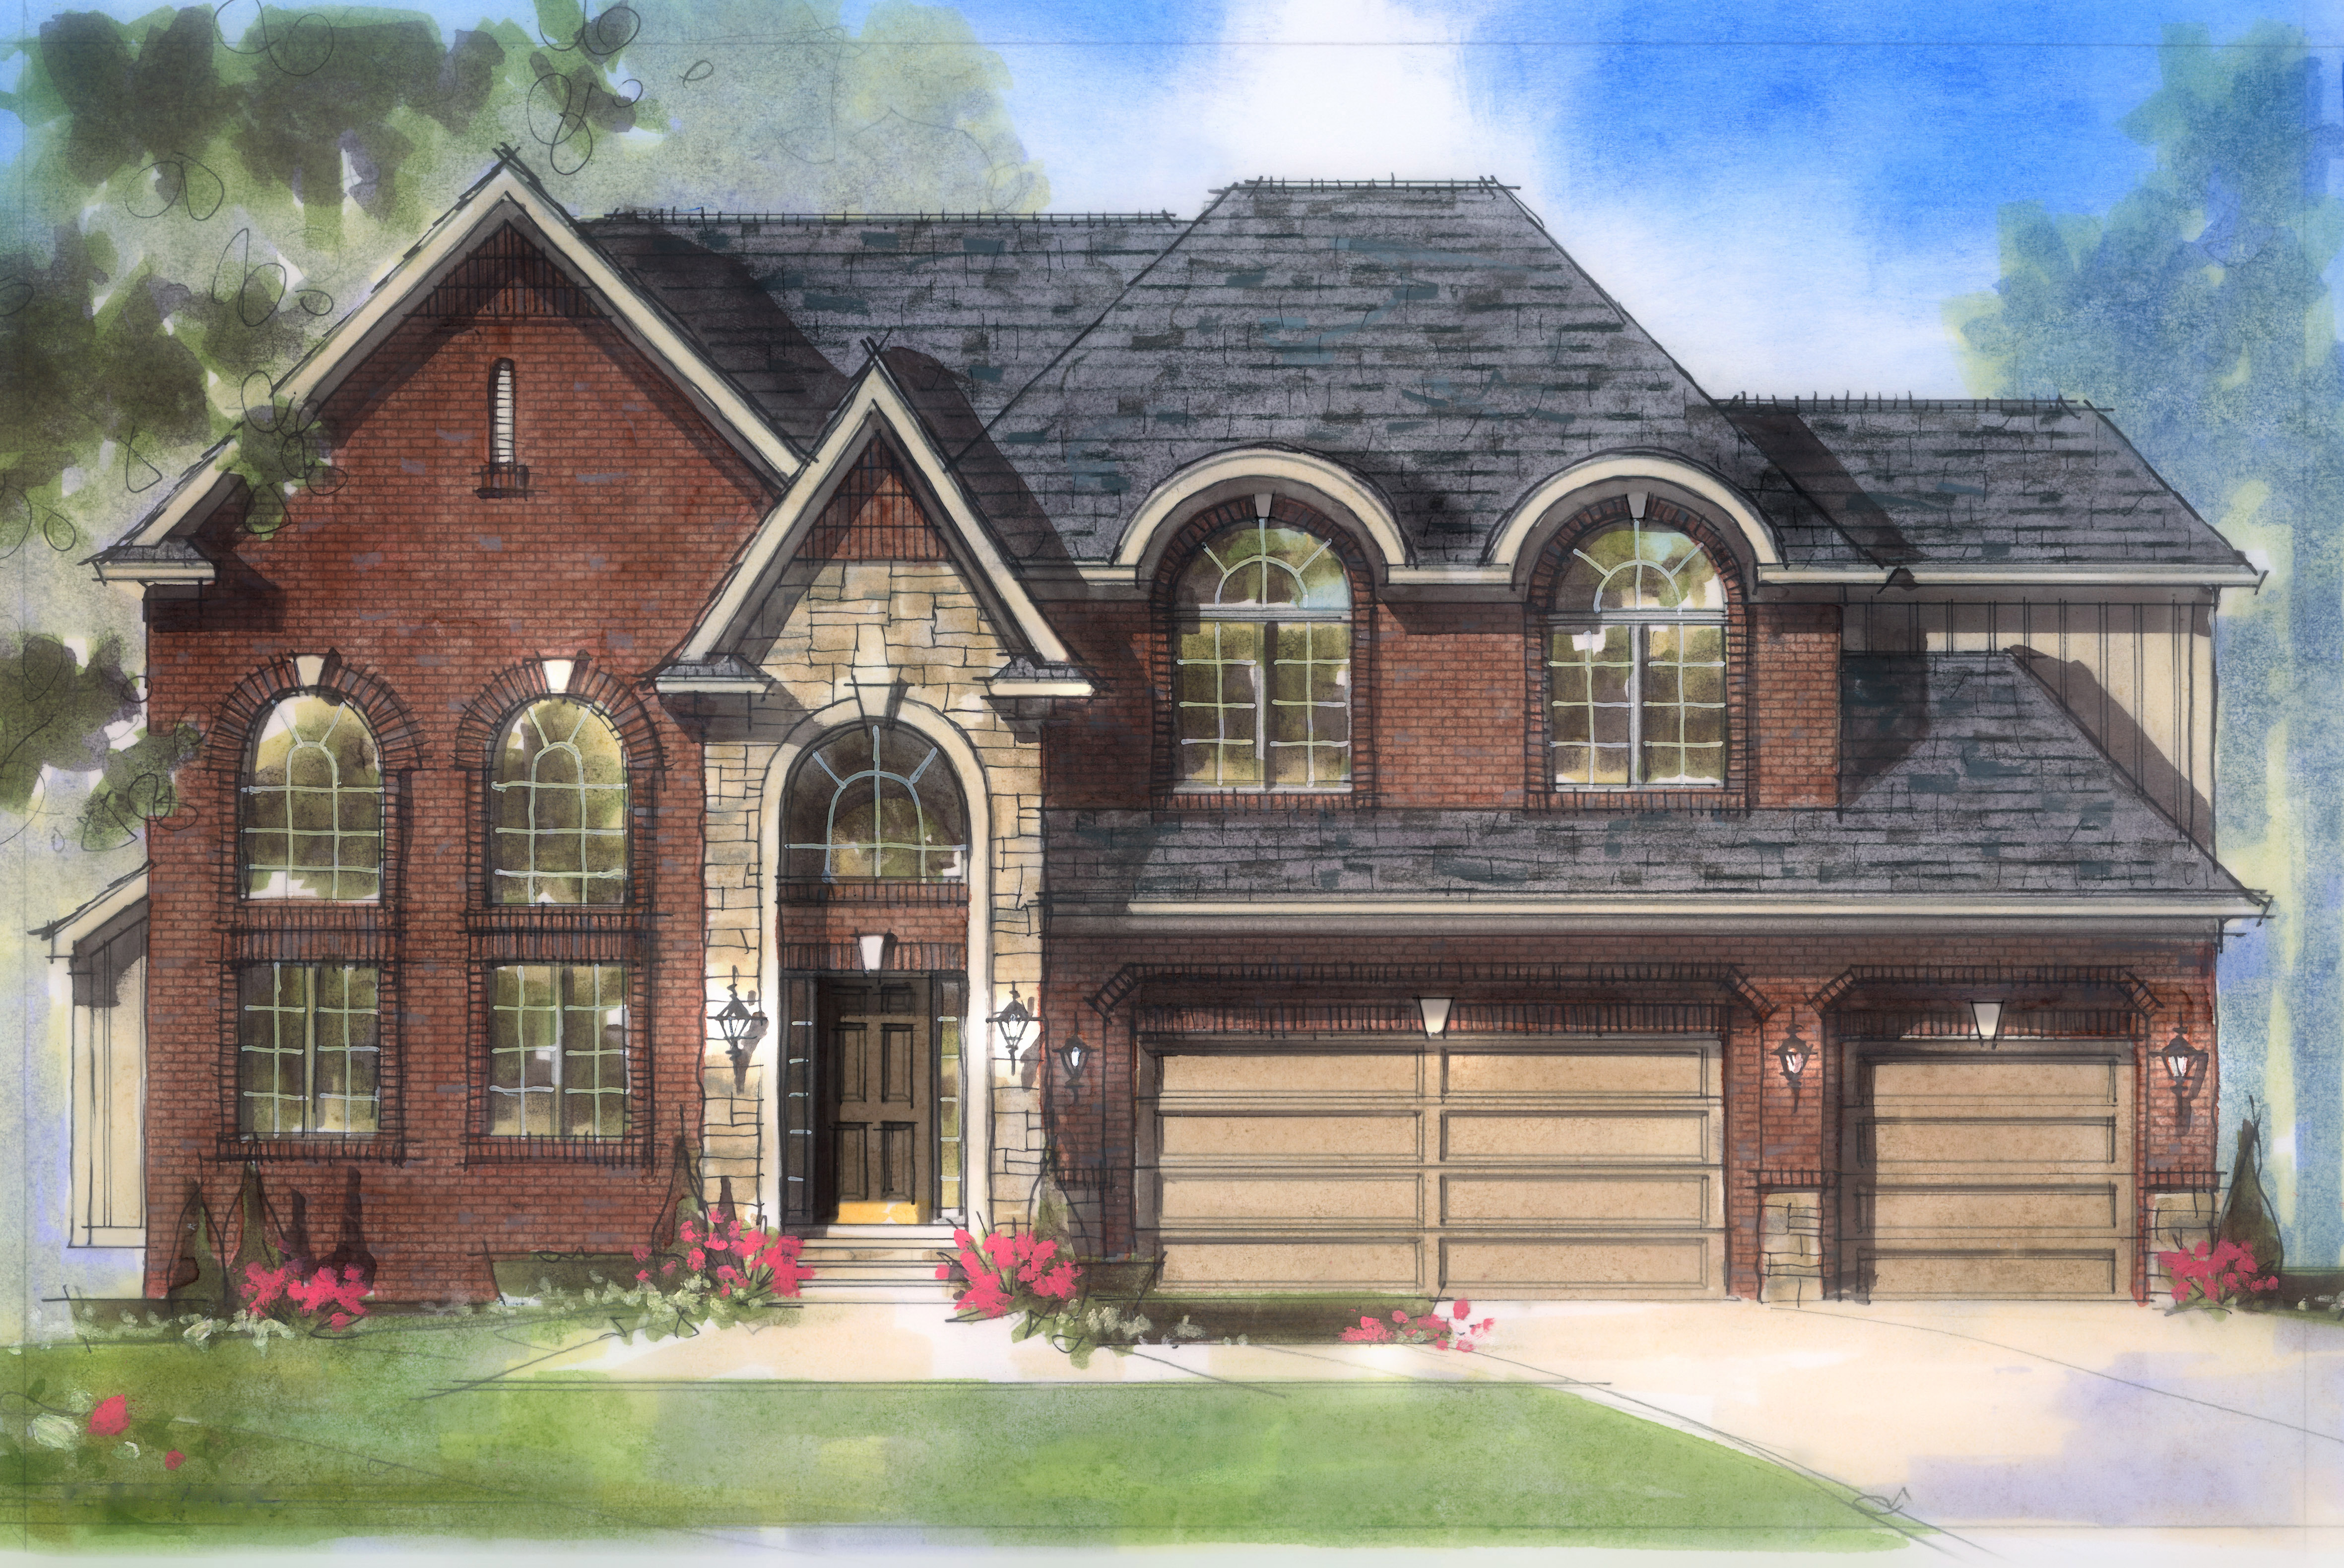 New Homes For Sale, The Grand River